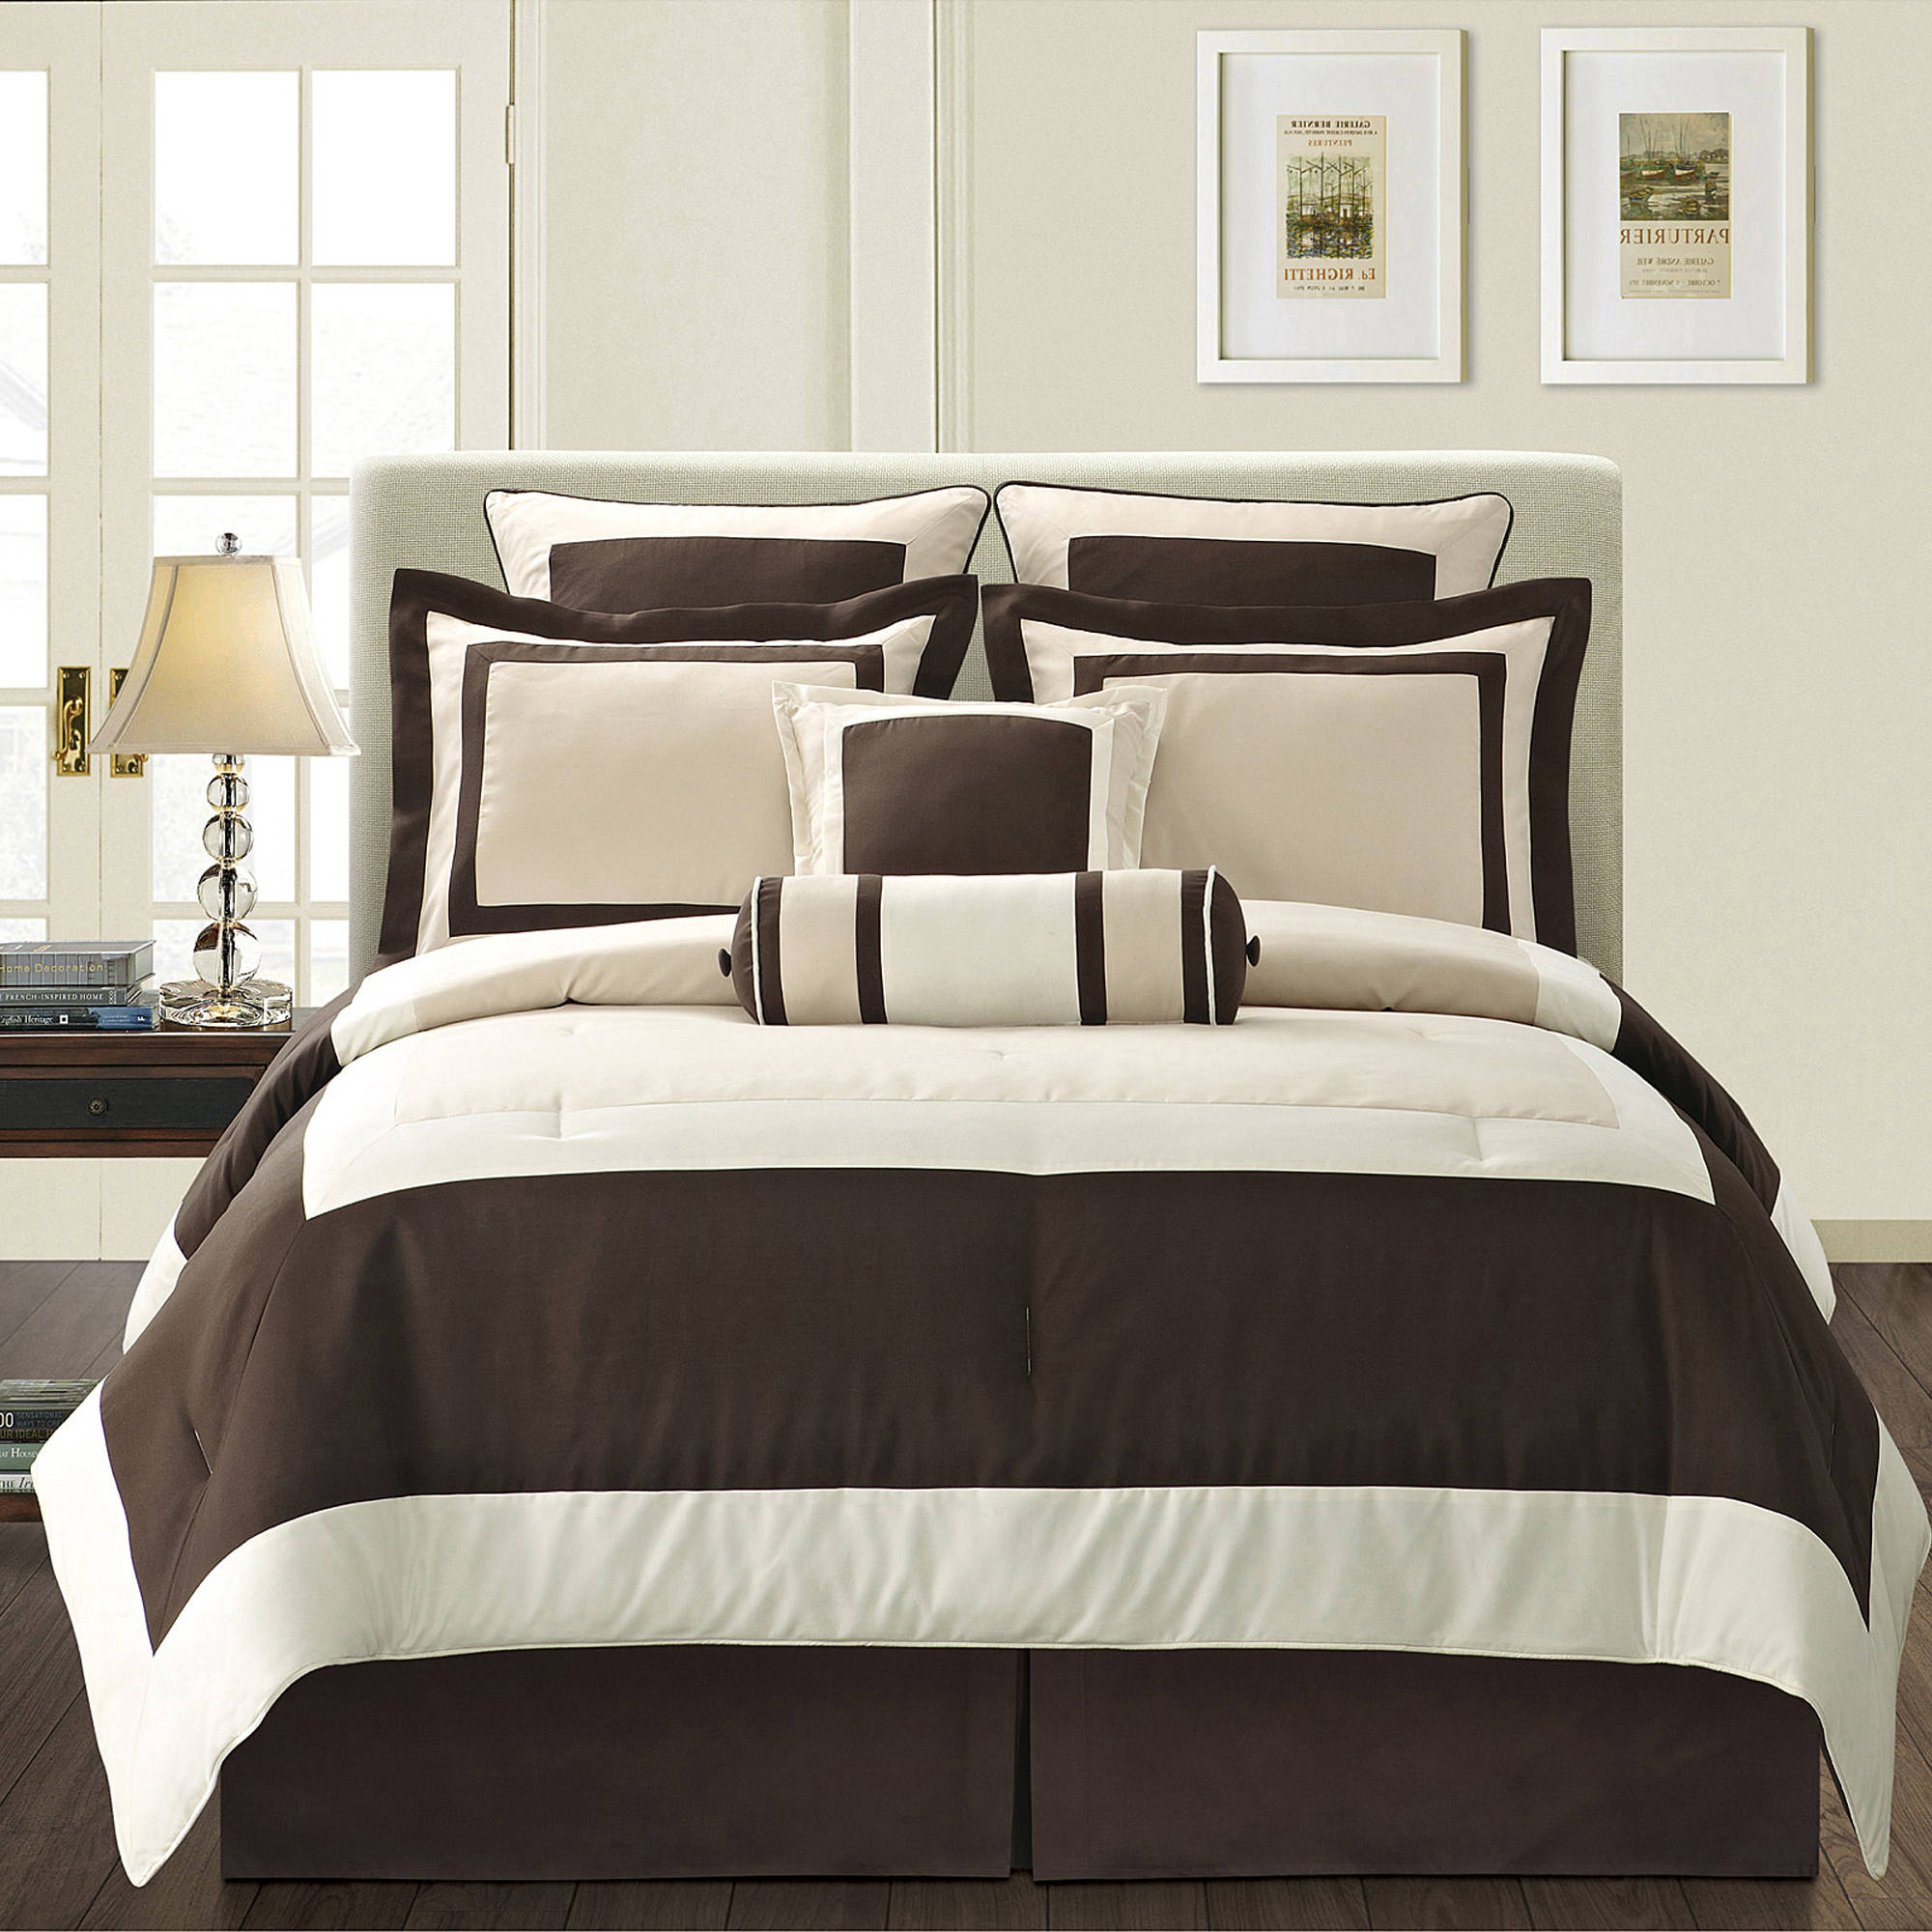 Fashion Street Gramercy 8-Piece Bedding Comforter Set